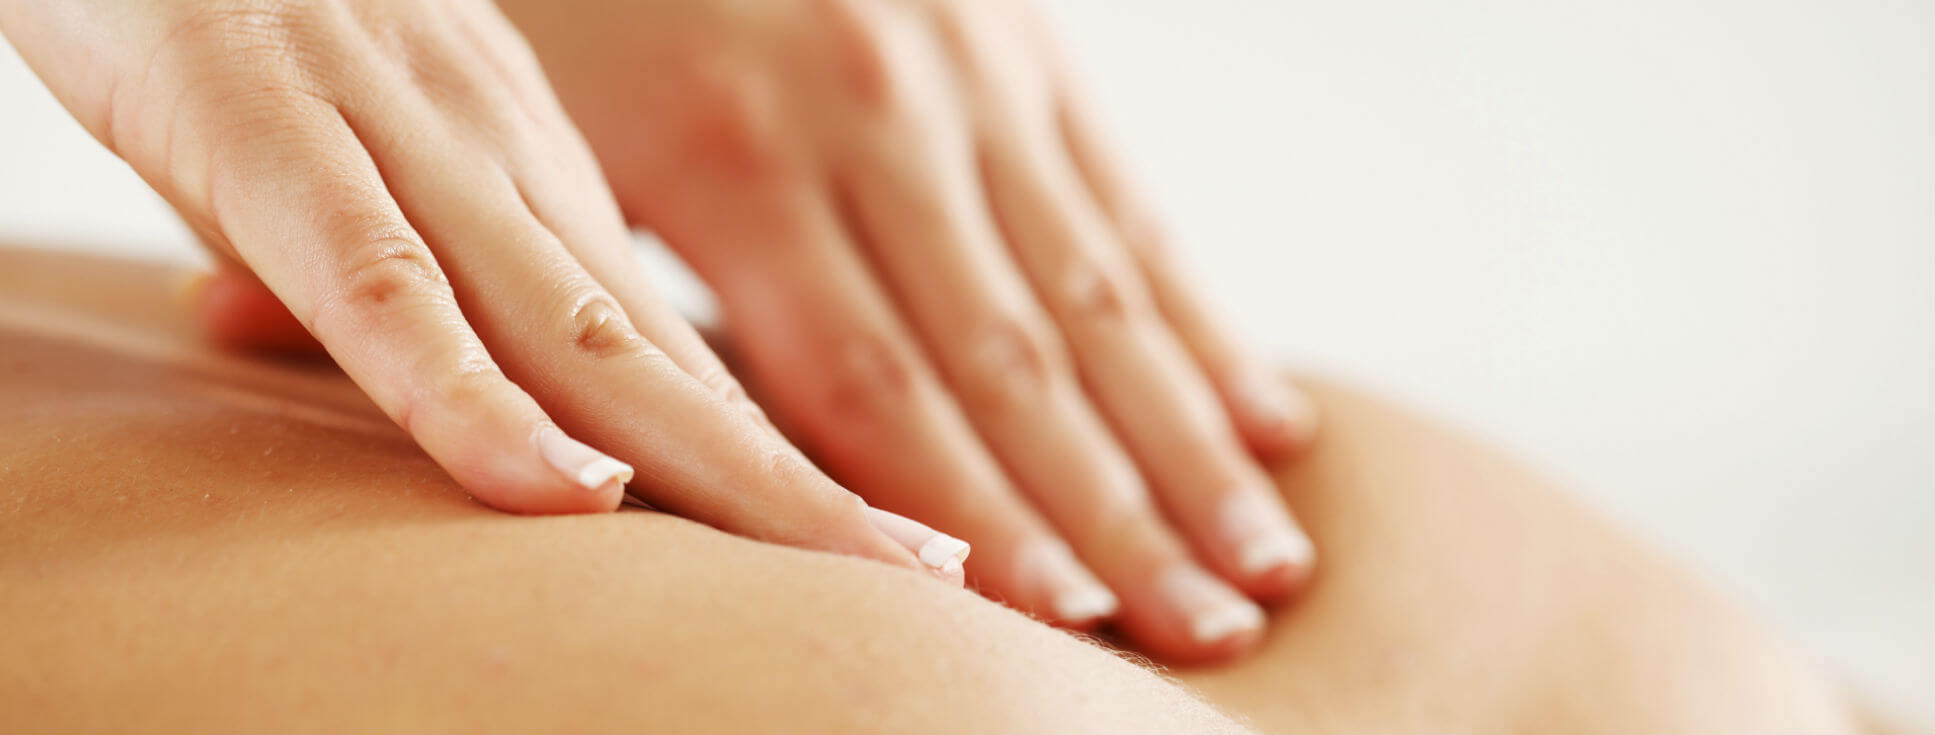 Rangeview Massage Therapy. Remedial massage in Perth